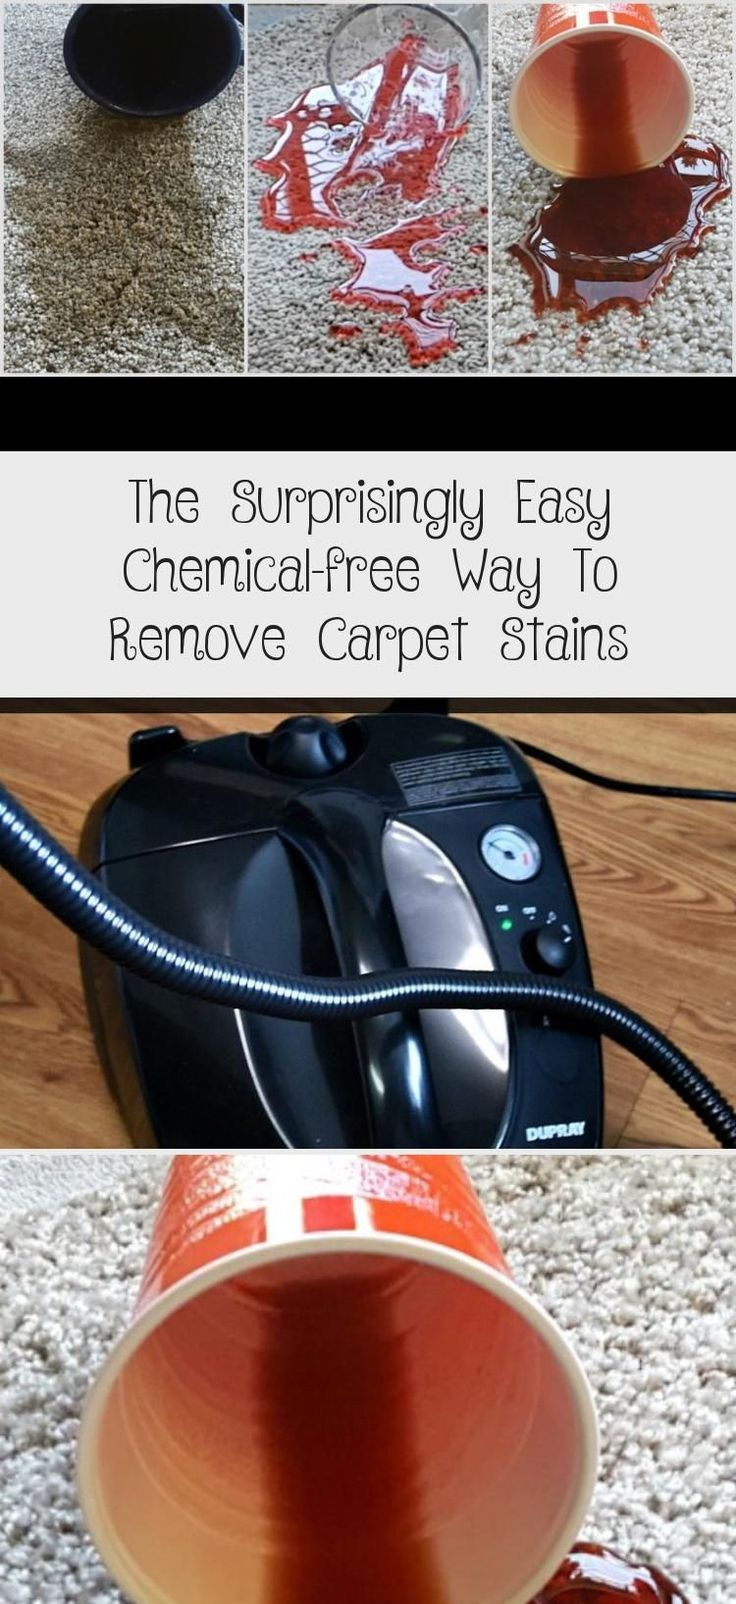 Spot Cleaner Carpet Stain Removal DIY Carpet stain